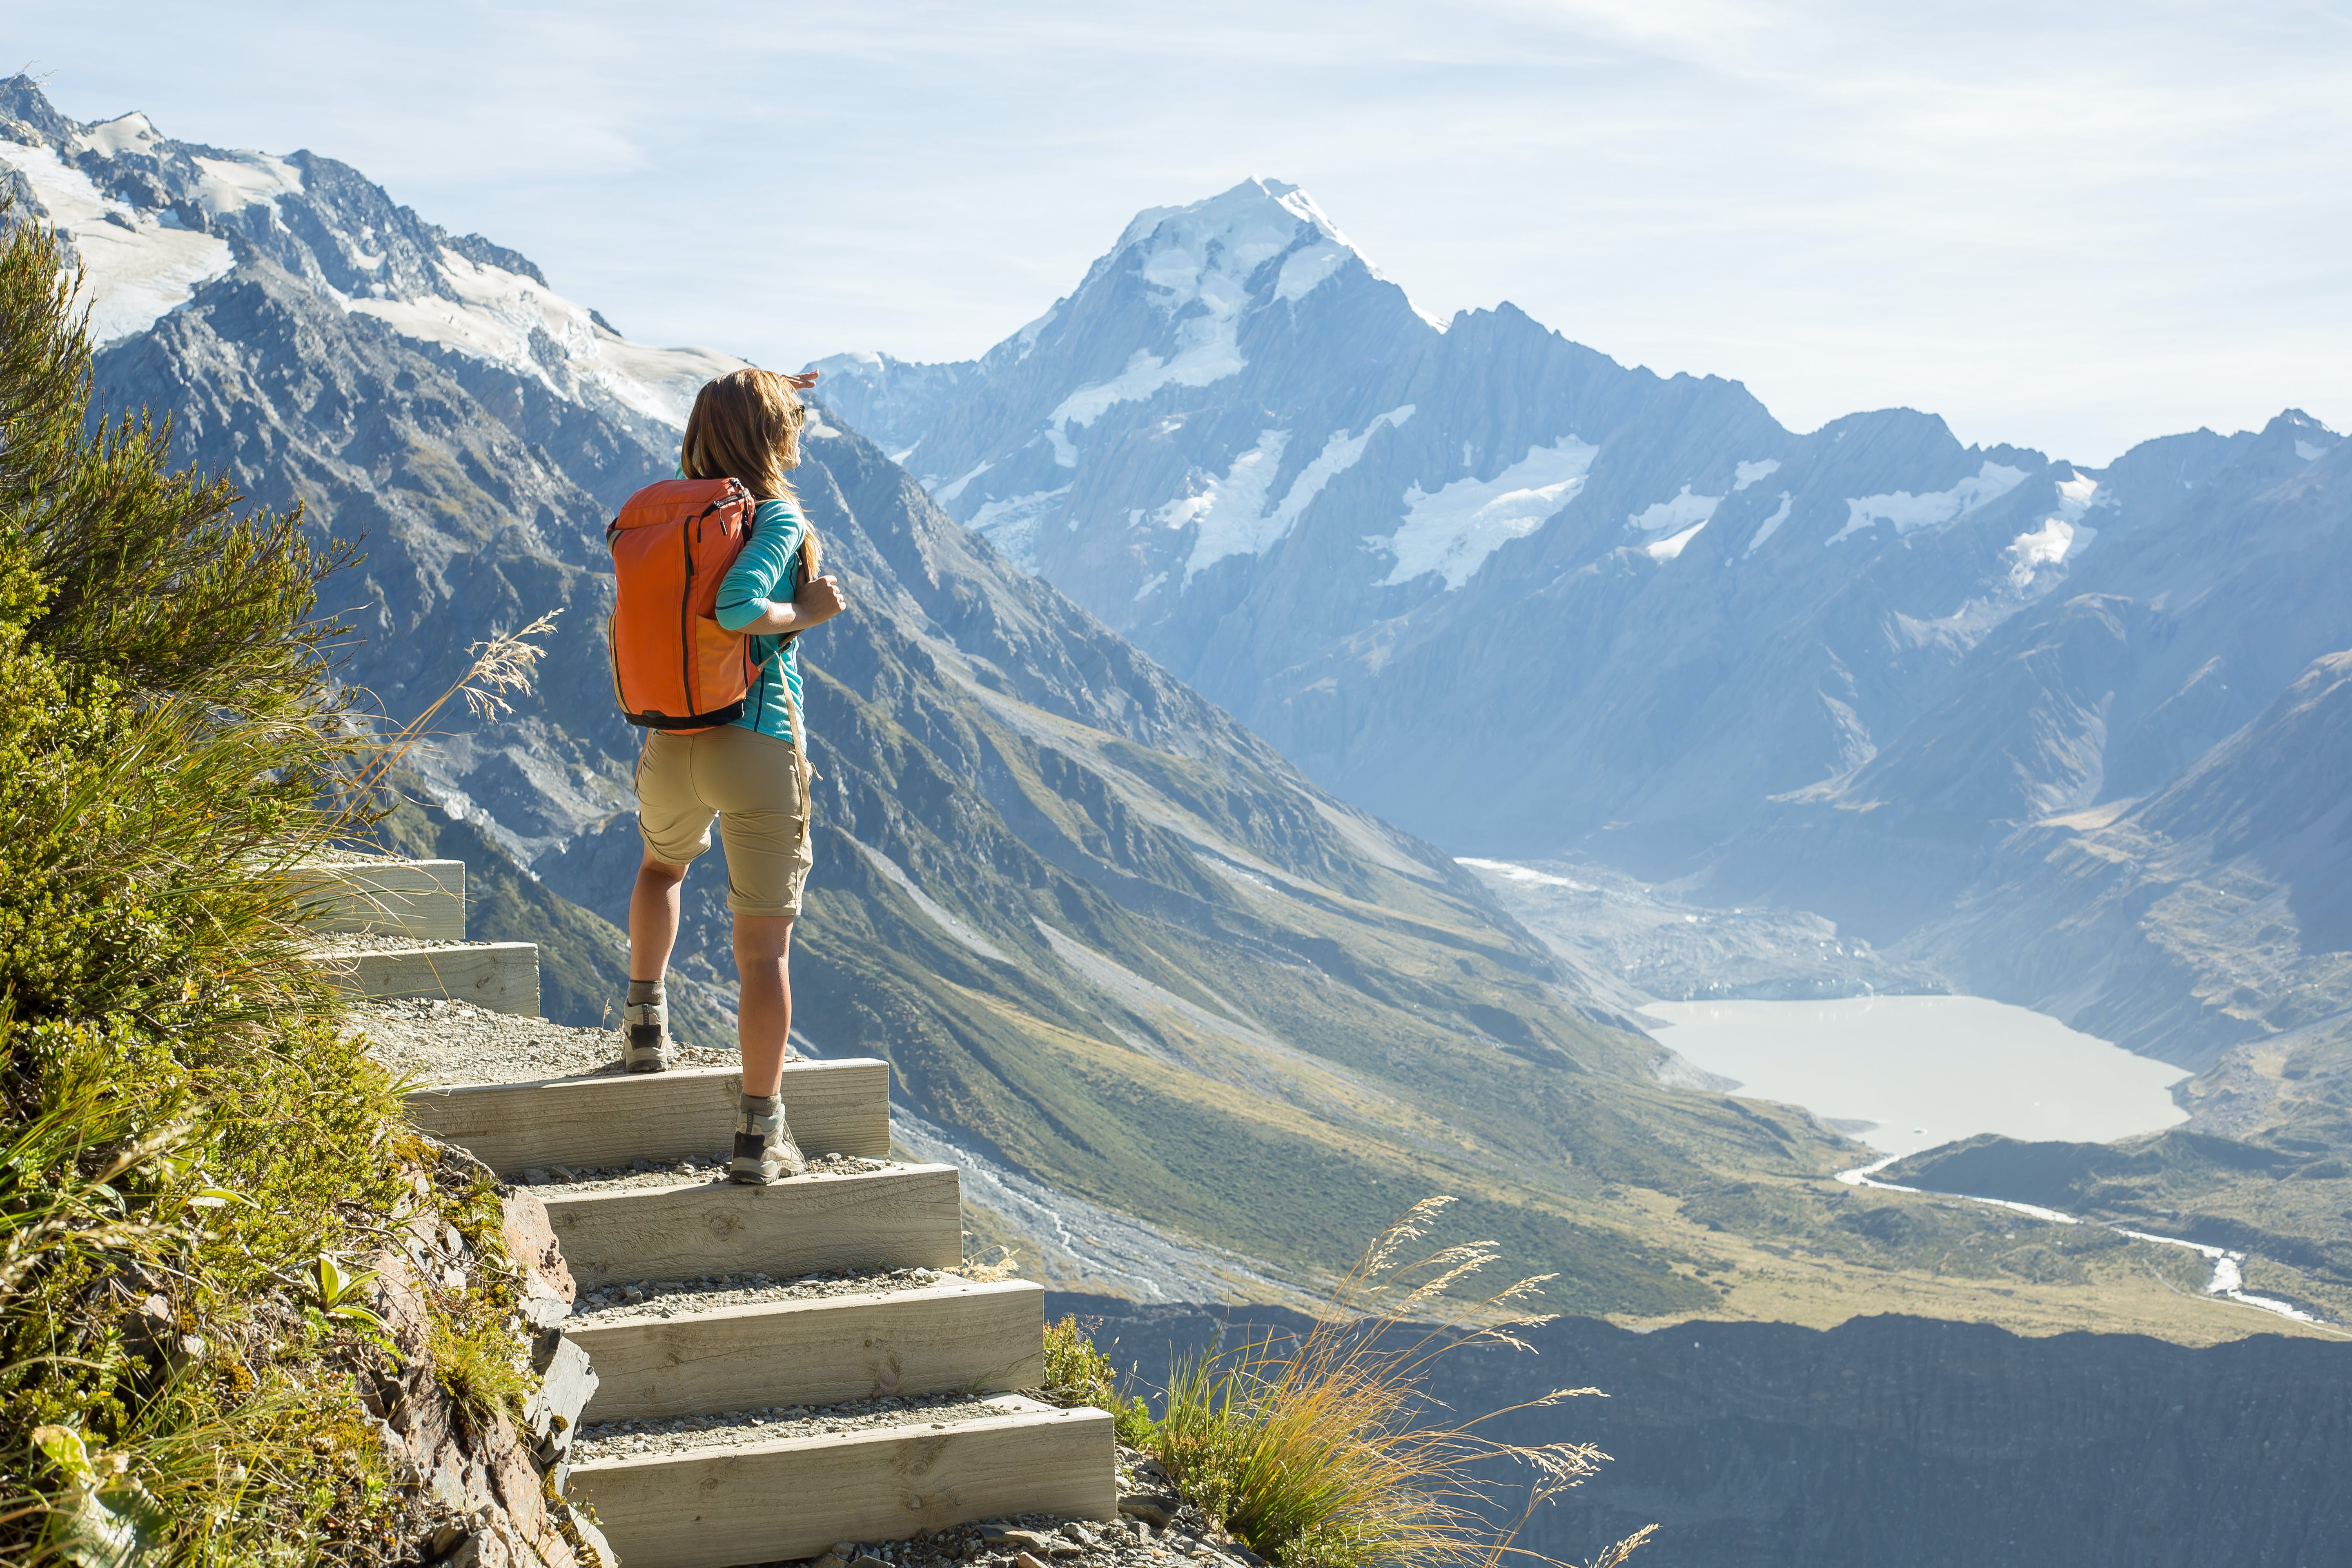 Hiker stands on a mountain top and admires view